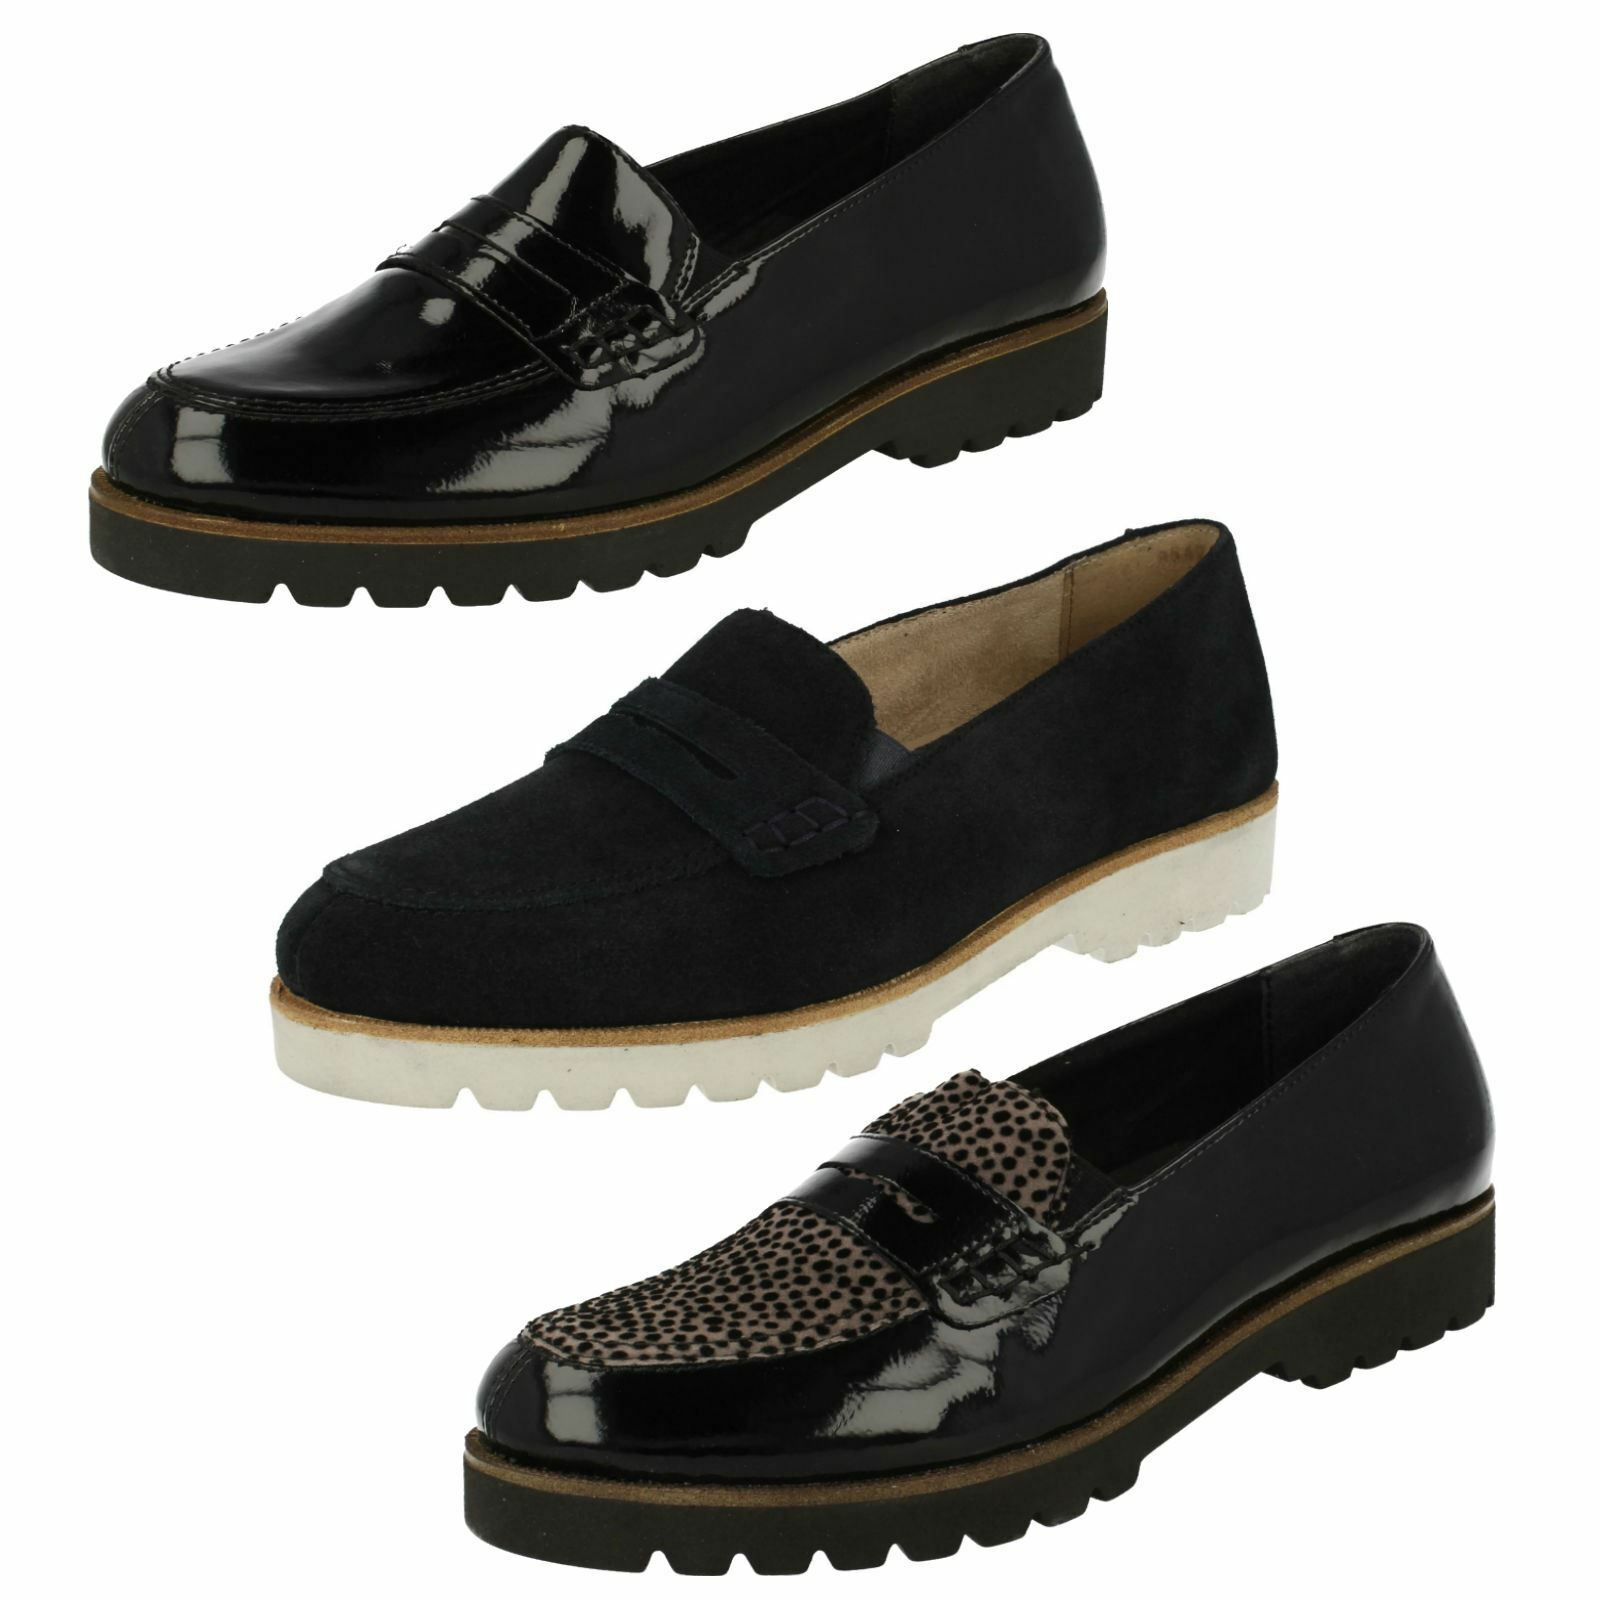 Ladies Remonte Loafer Style Casual Slip On shoes D0101